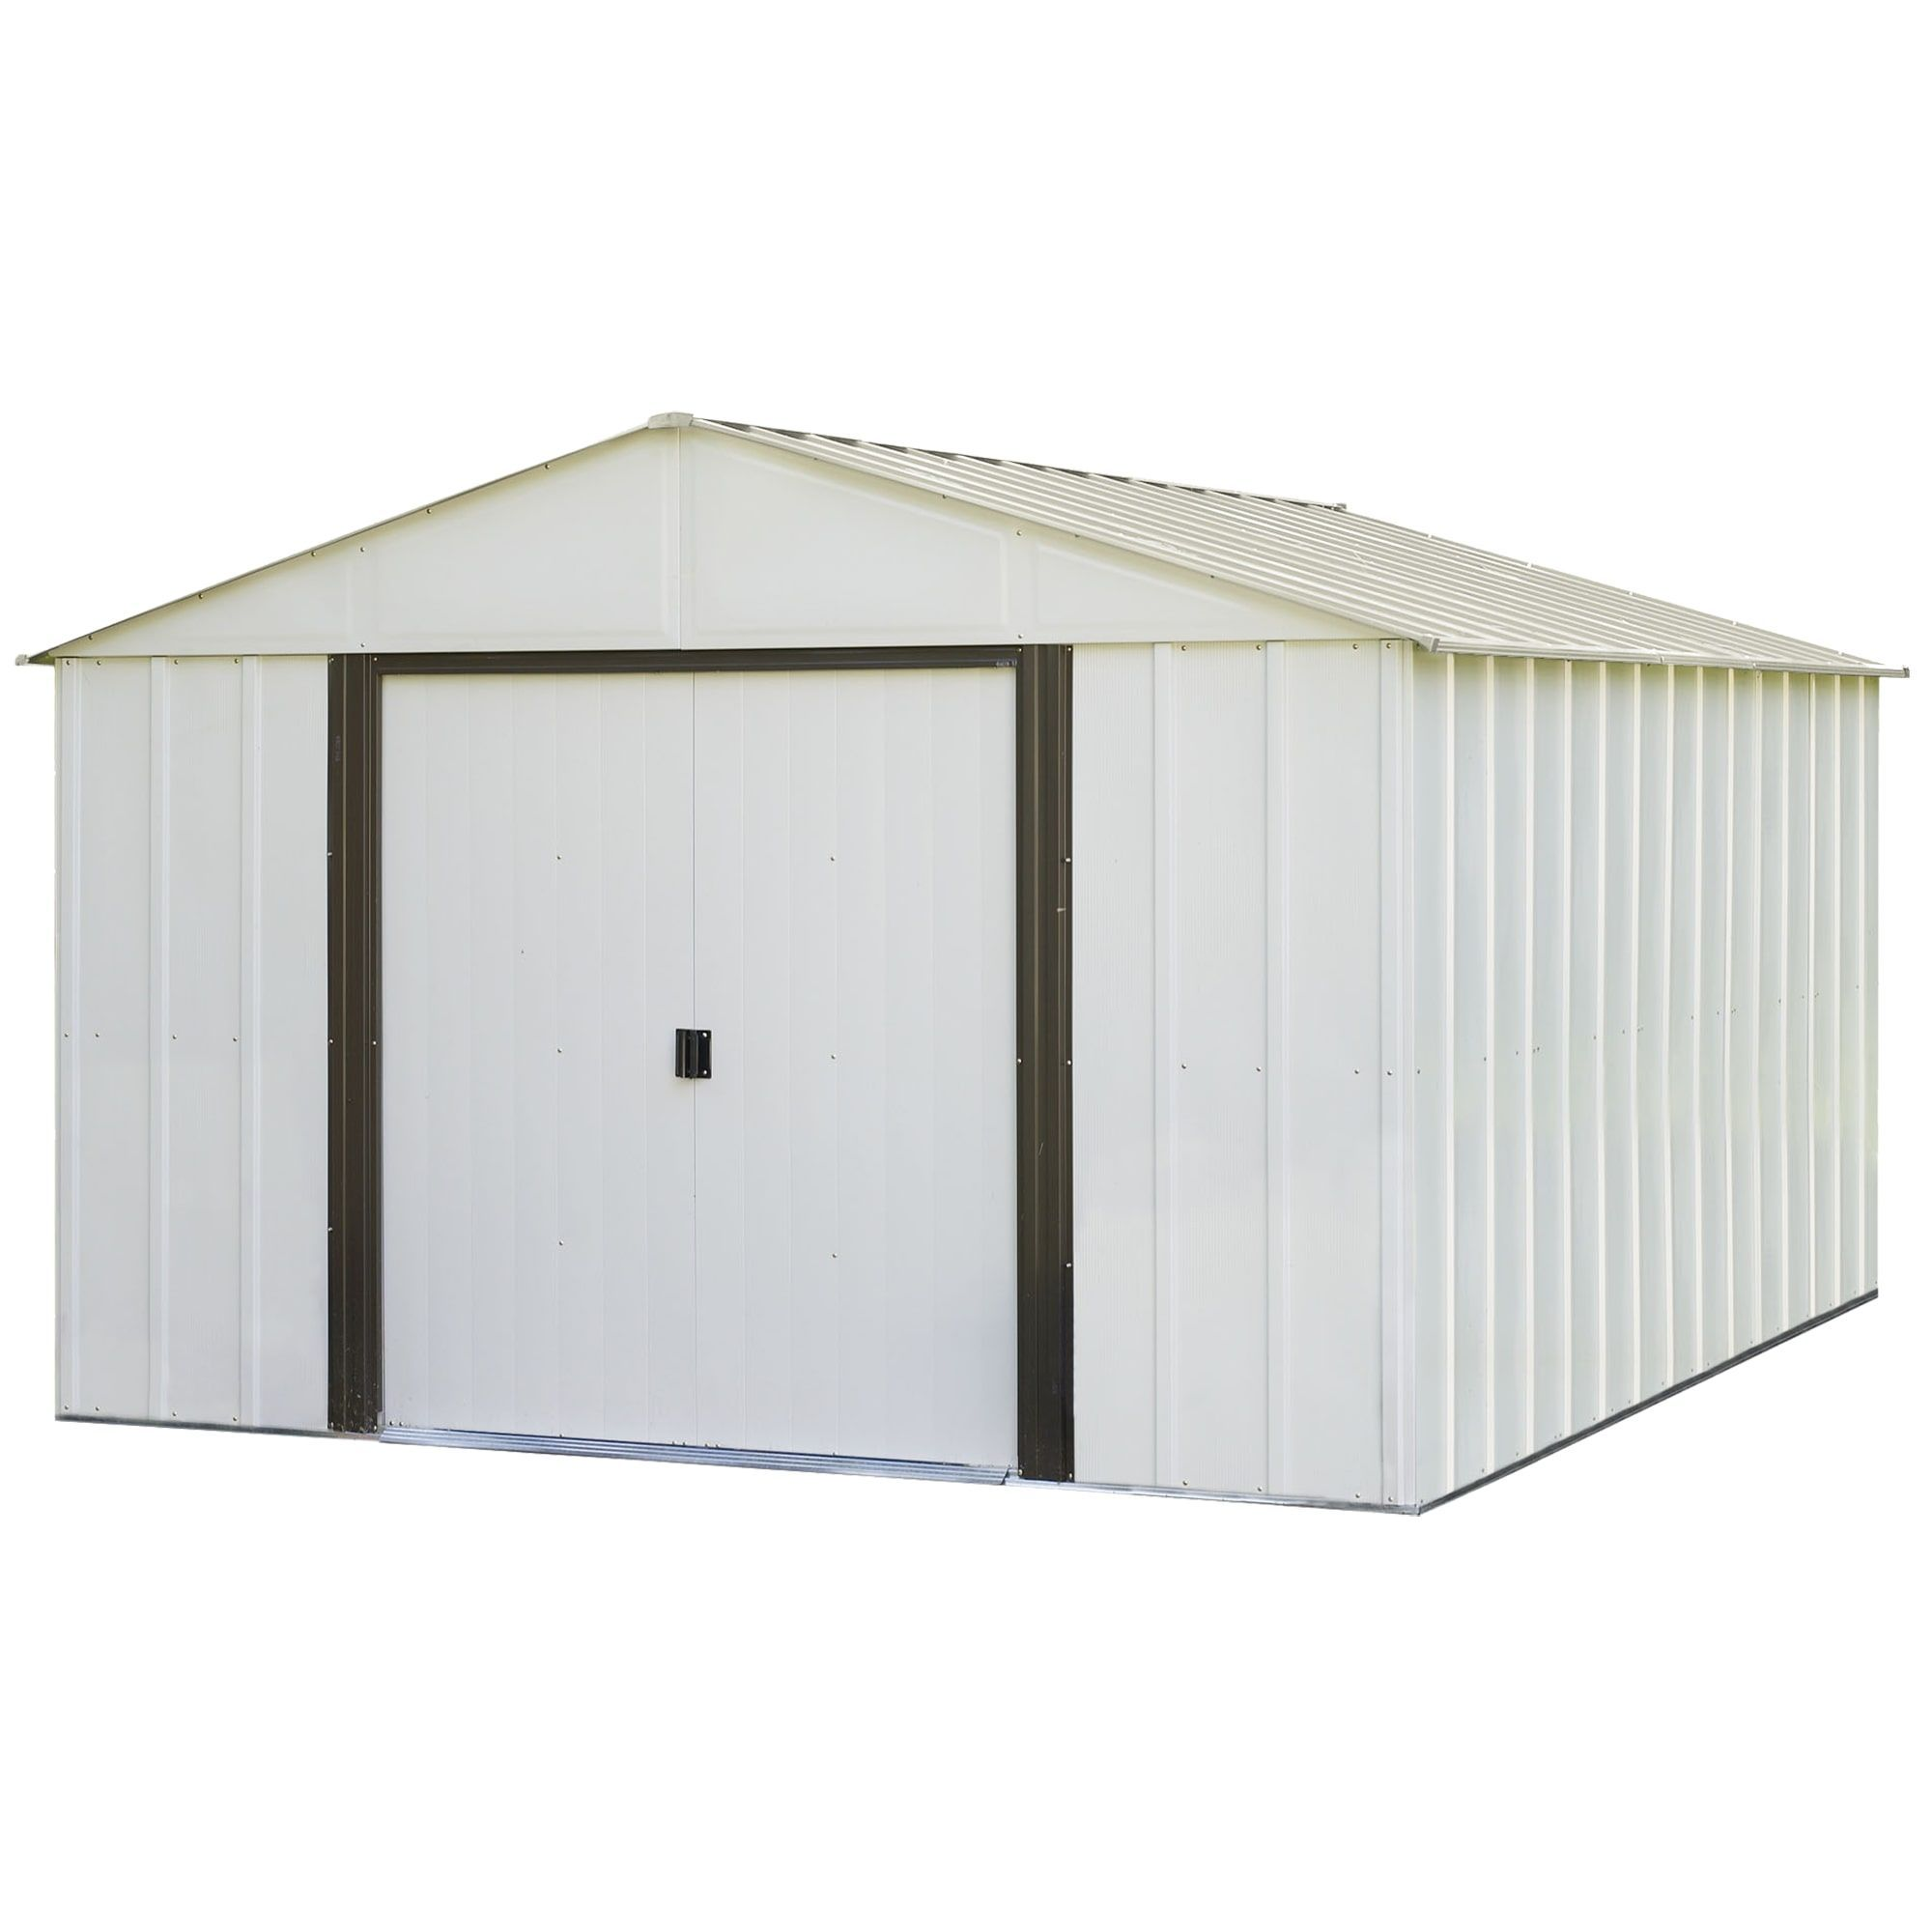 Online Shopping Bedding Furniture Electronics Jewelry Clothing More Steel Storage Sheds Metal Storage Sheds Metal Storage Buildings